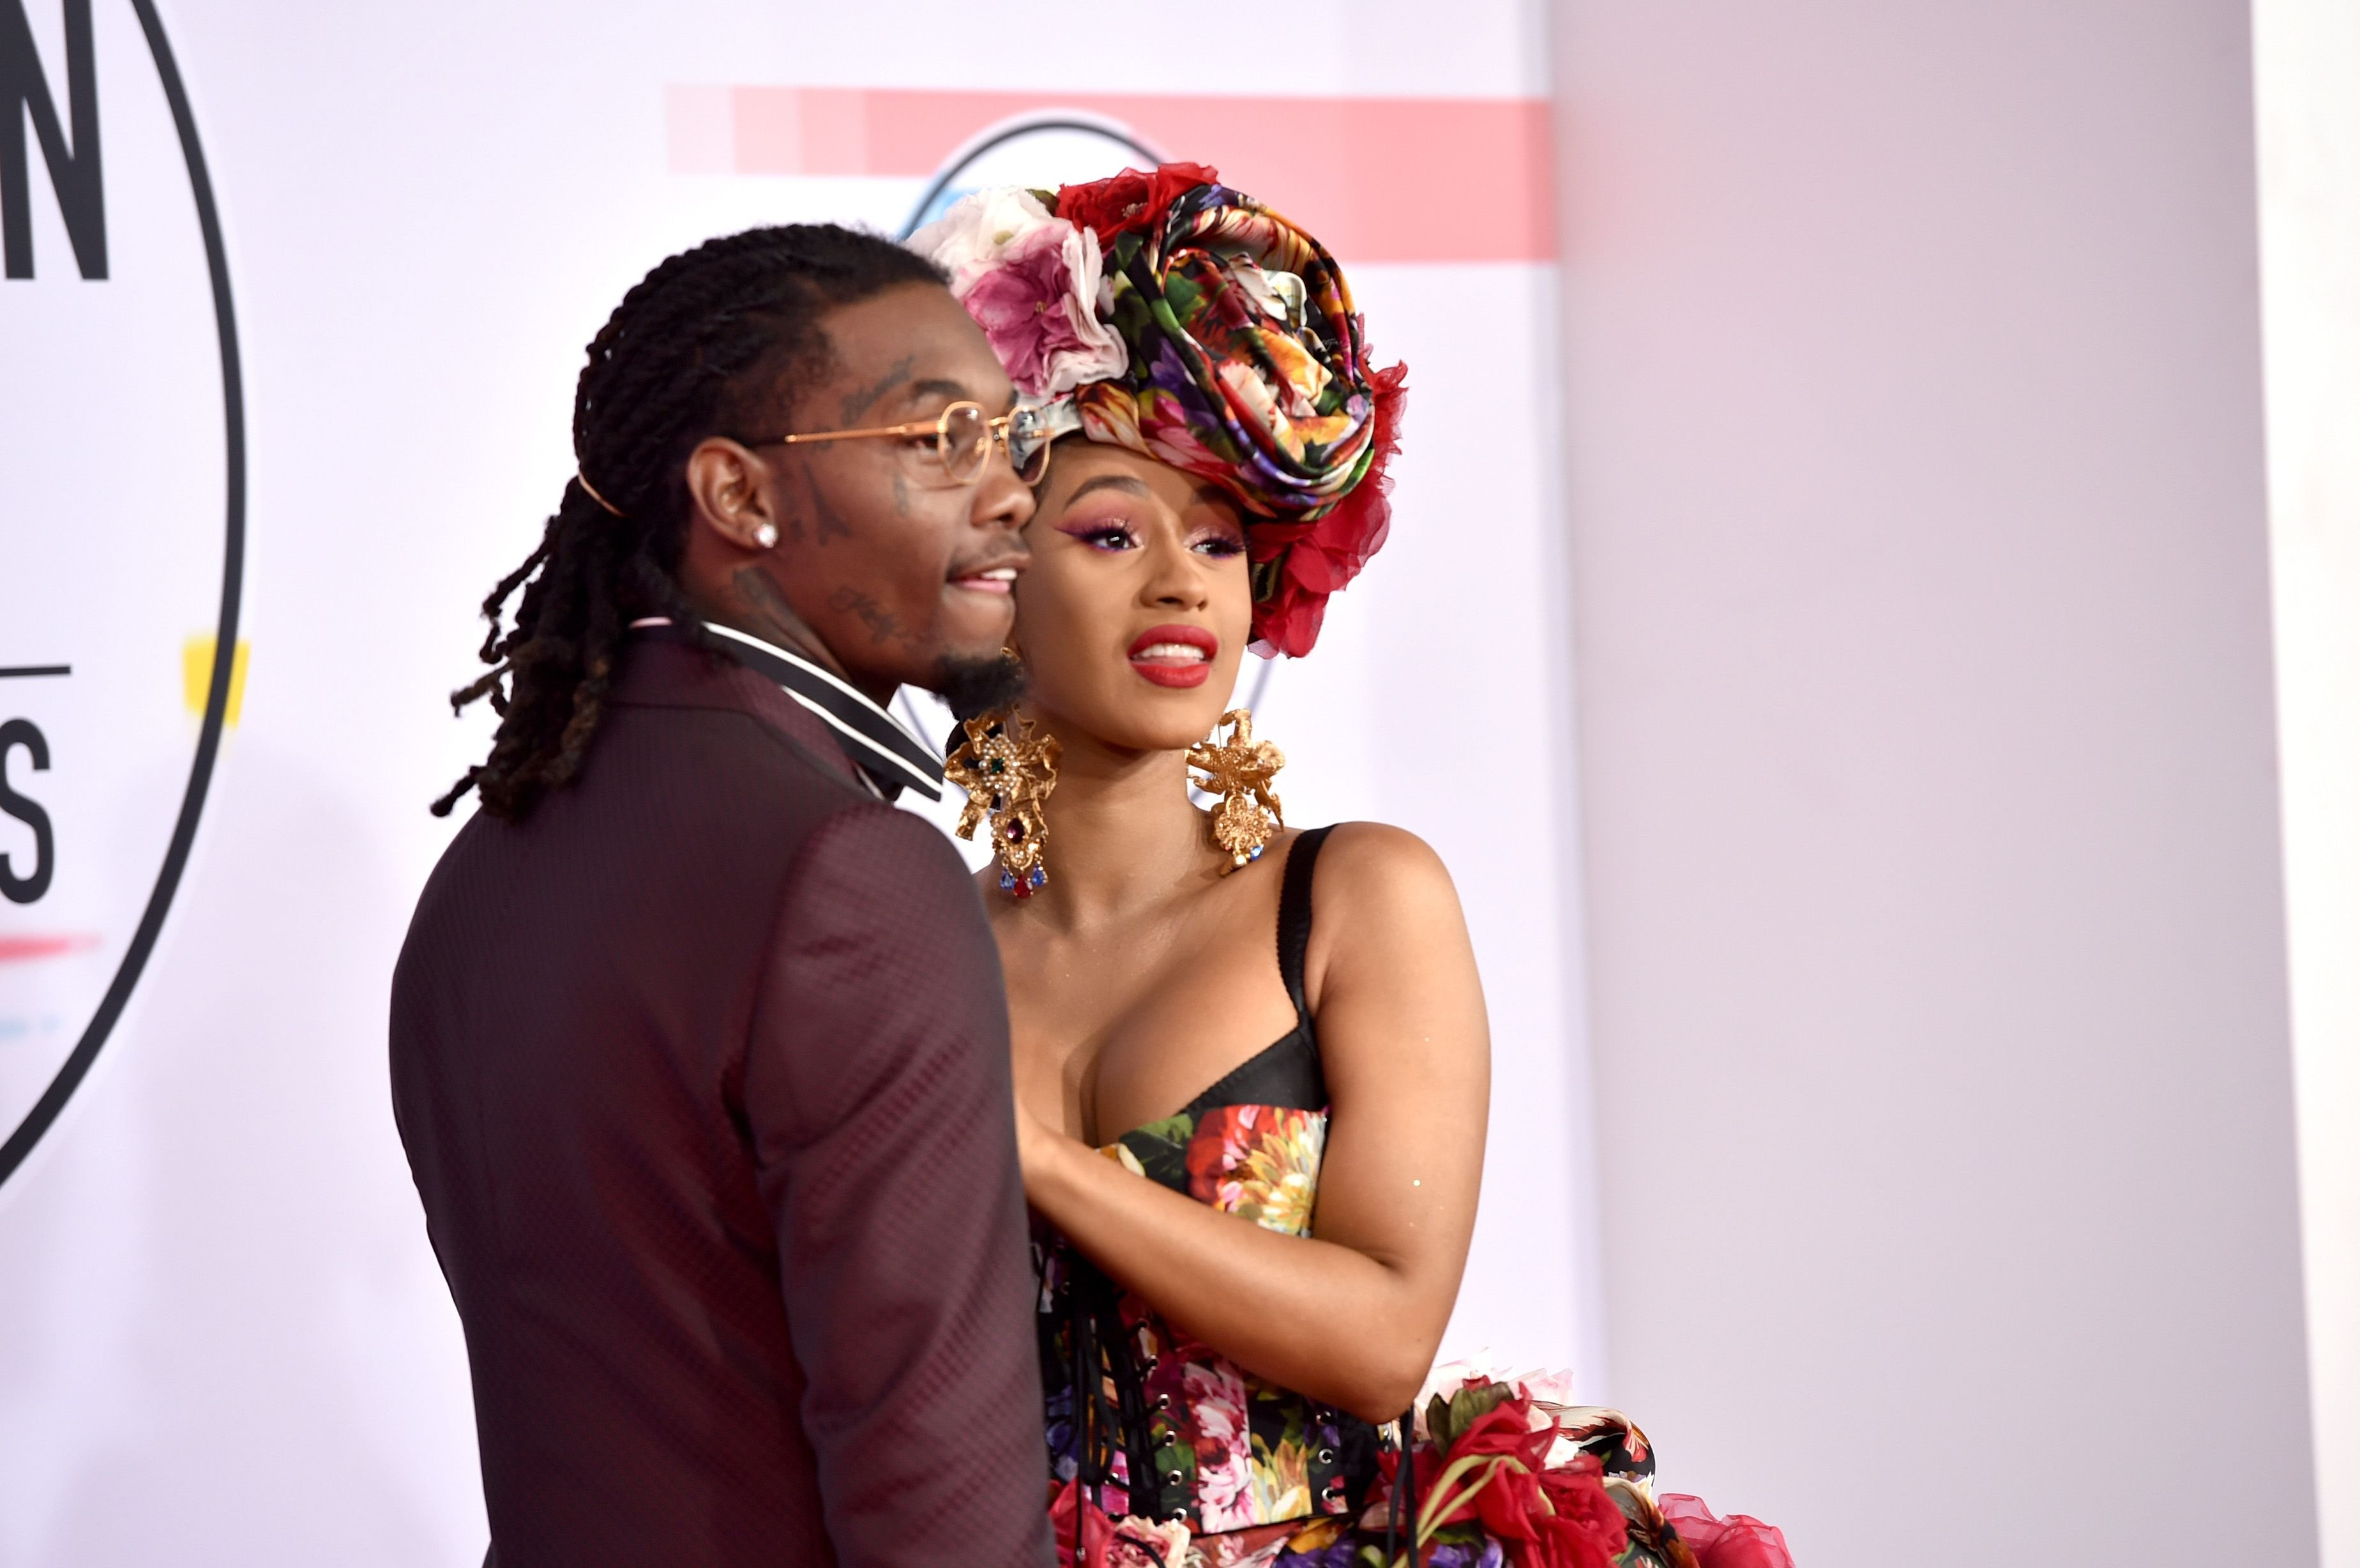 Offset and Cardi B at the American Music Awards in Los Angeles on October 9, 2018. | Photo: Getty Images